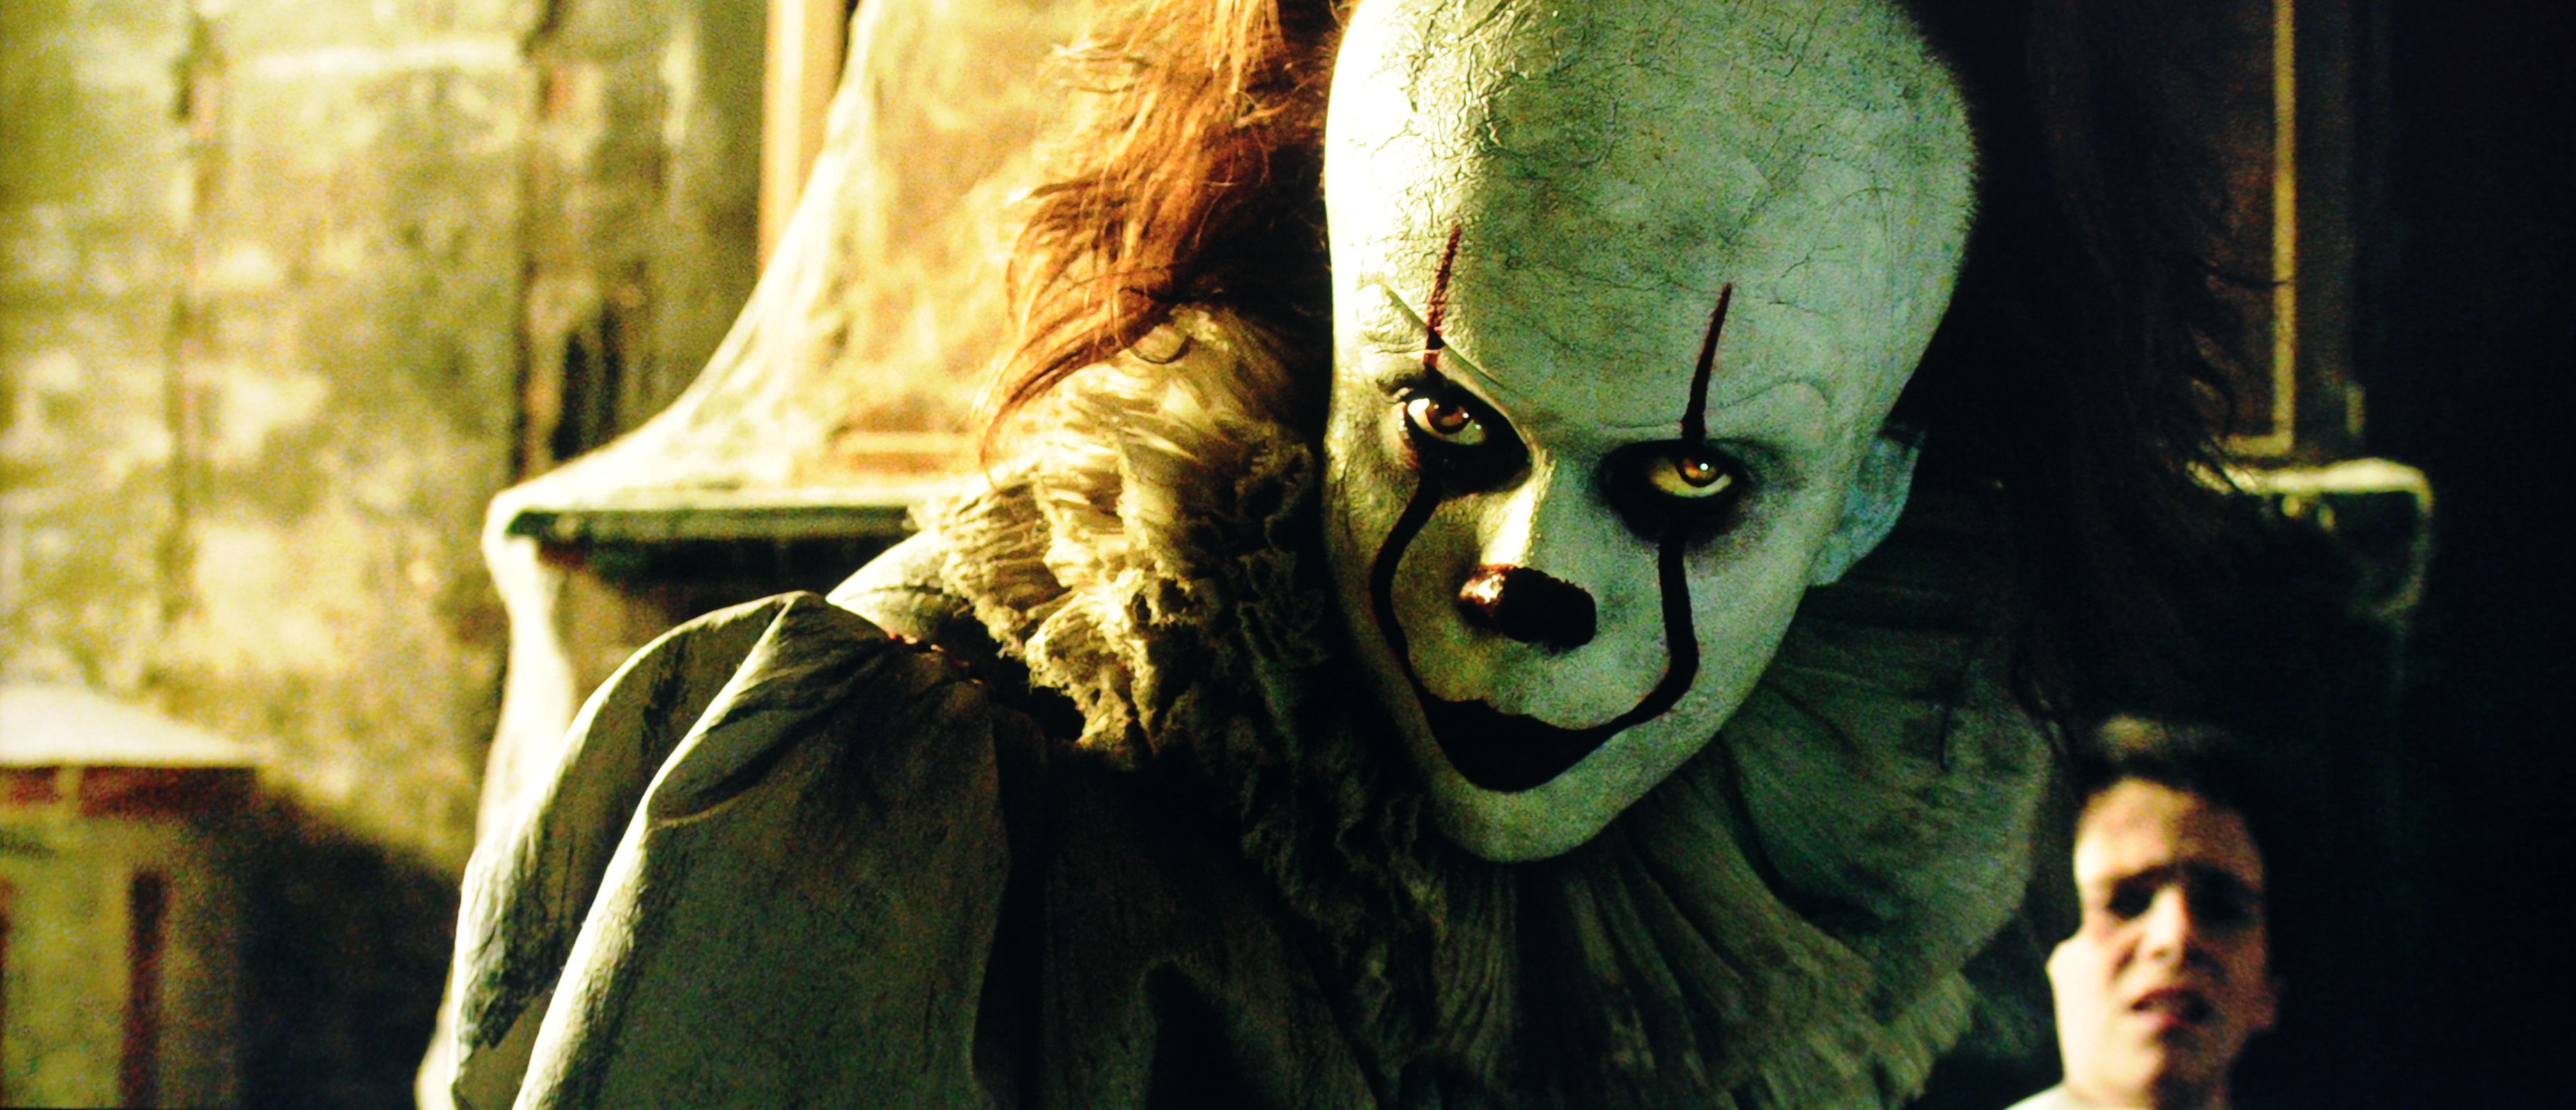 Pennywise Hintergrund: ES (4K Review, Stephen King, Rezension